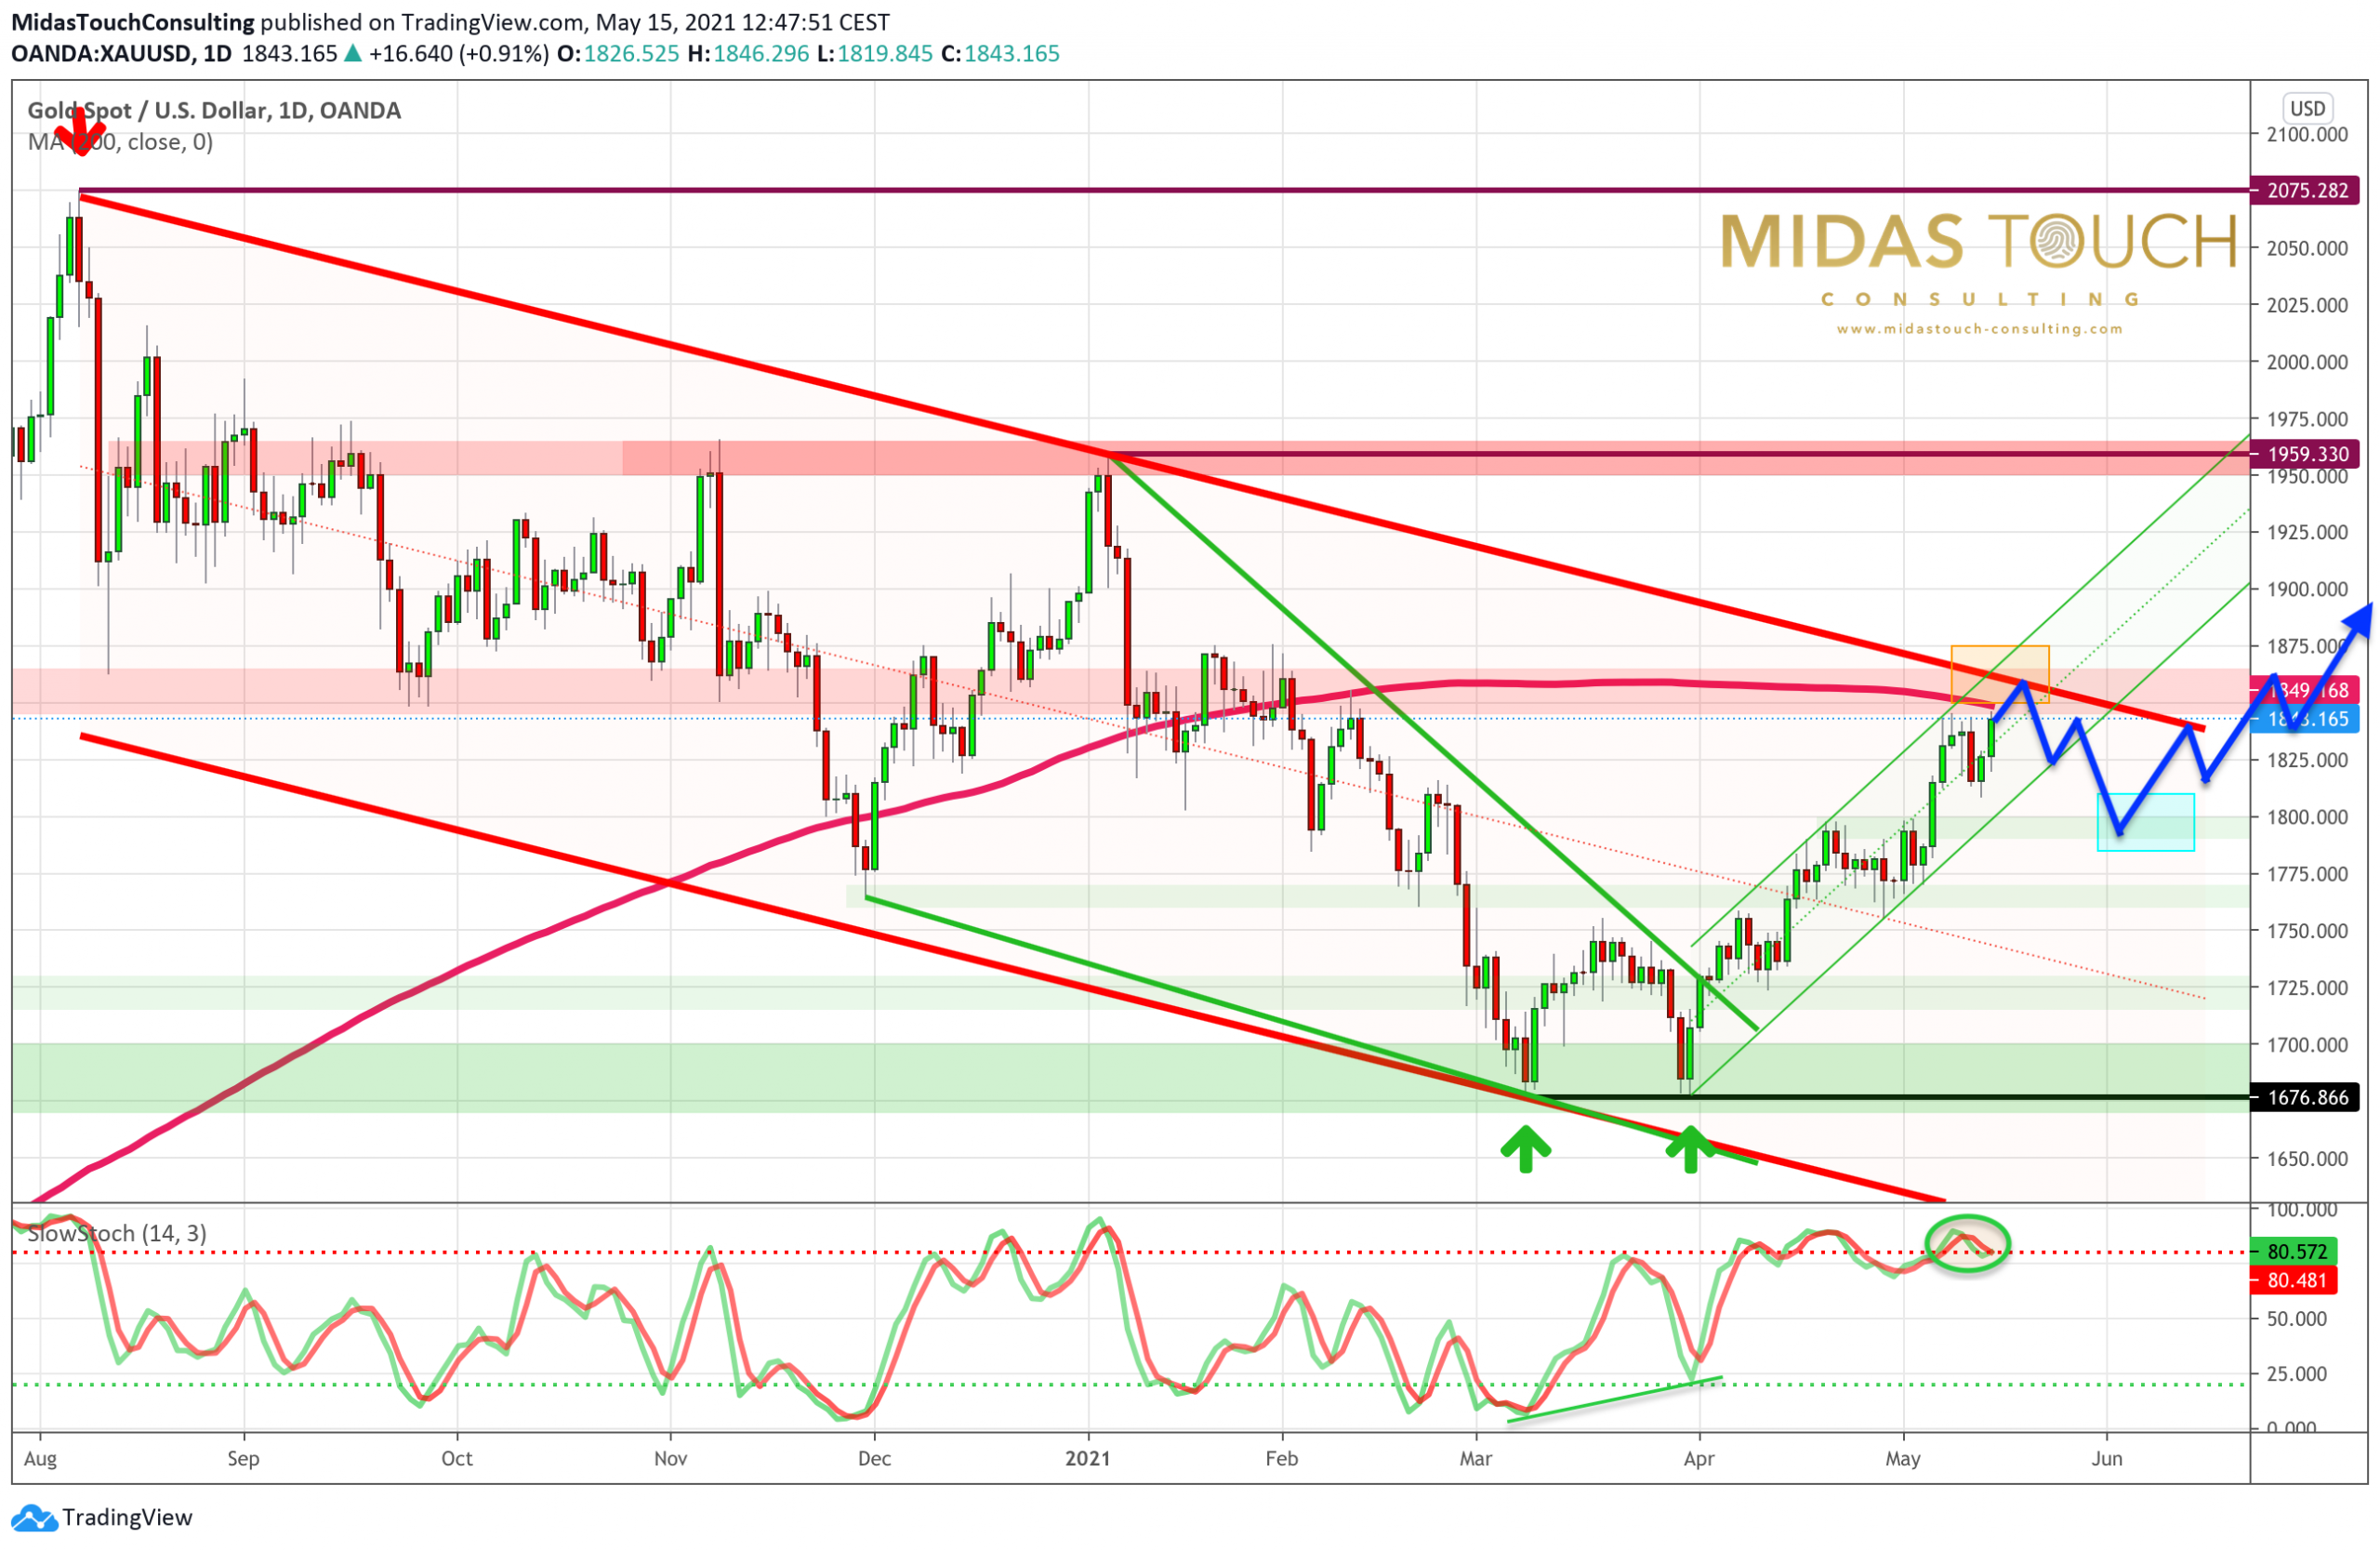 Gold in US-Dollars, daily chart as ofMay15th, 2021. Source: Tradingview. . The Midas Touch Gold Model™ Update.